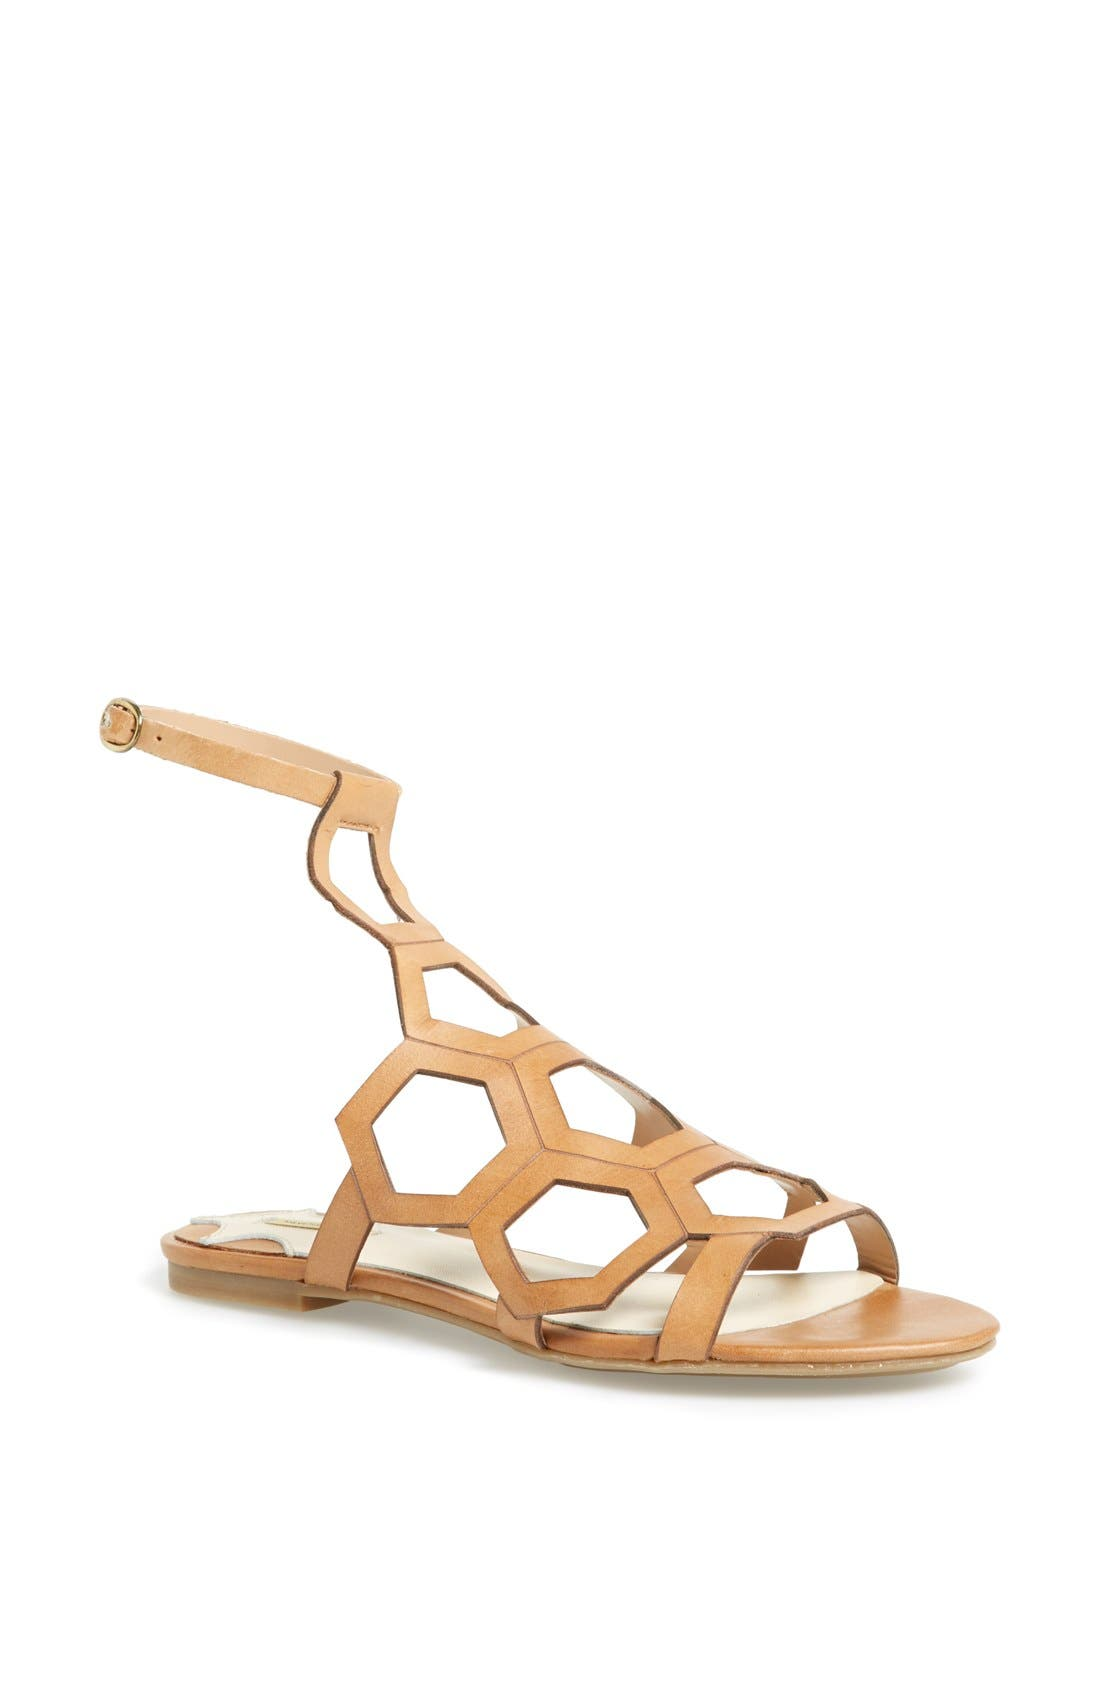 Alternate Image 1 Selected - MAXSTUDIO 'Vita' Sandal